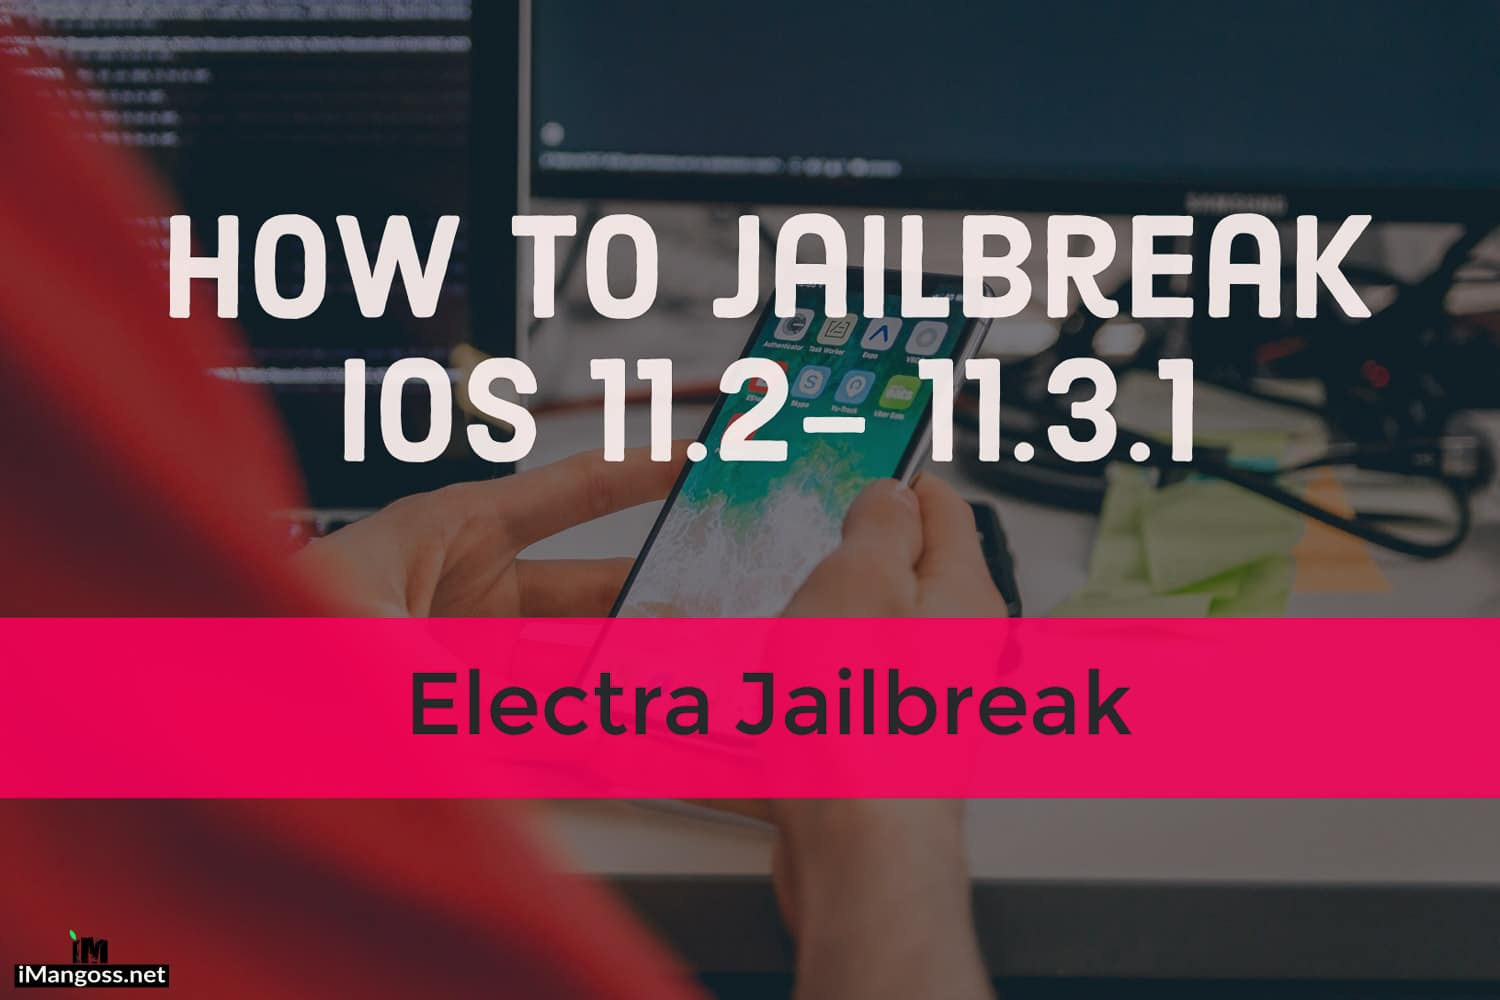 how to jailbreak ios 11.3.1 using electra